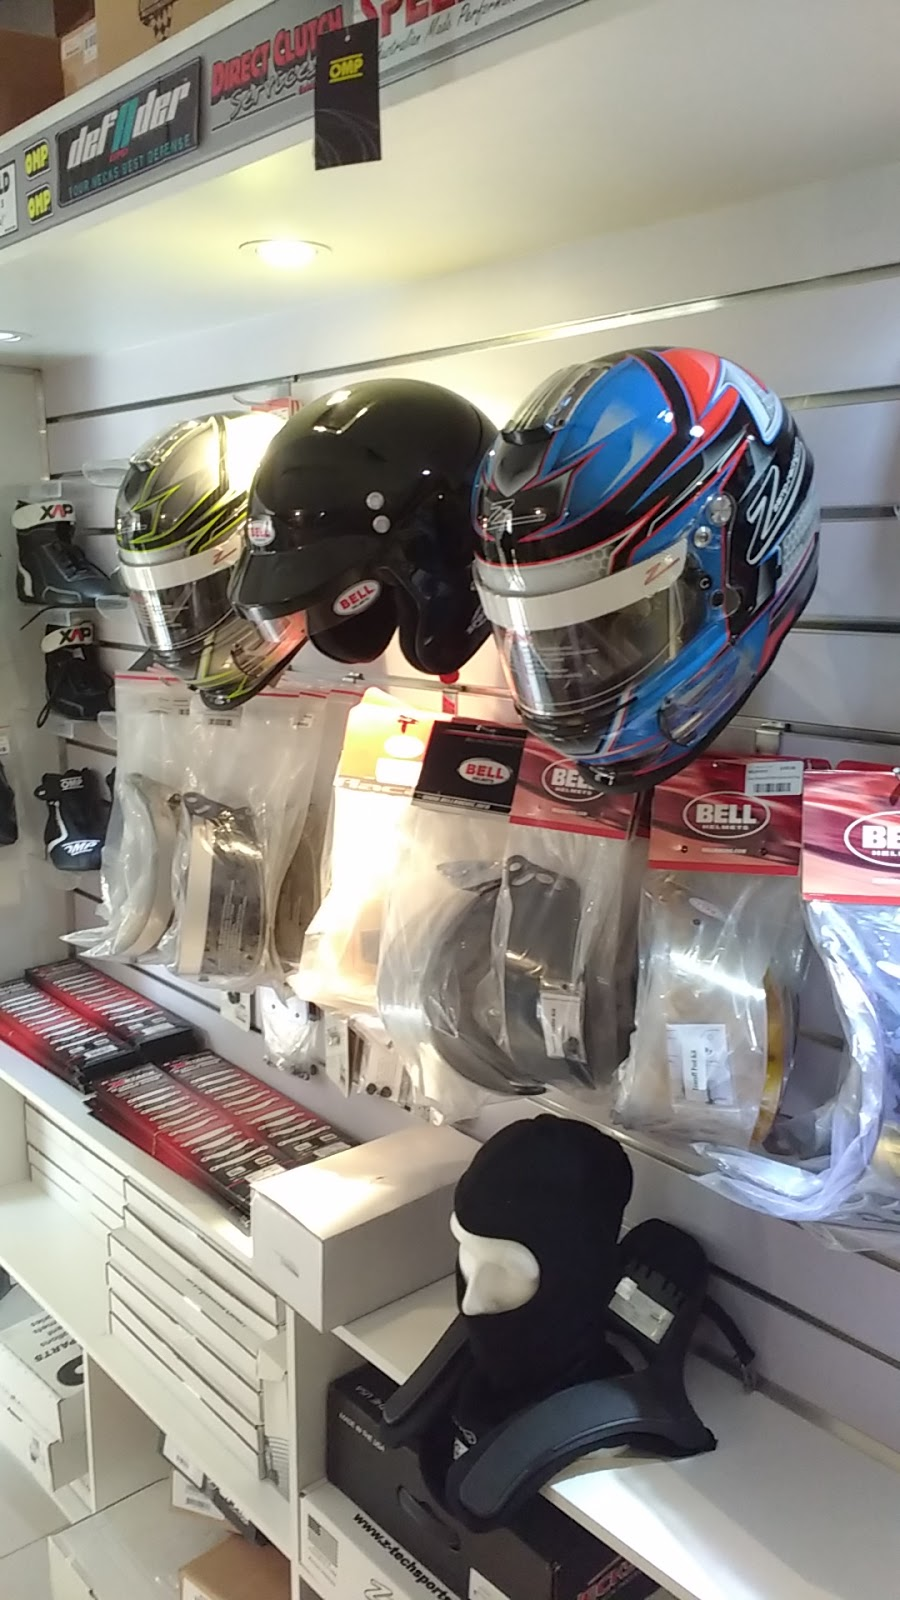 Xtreme Auto Parts | car repair | 8 Weathers St, Gowrie ACT 2903, Australia | 0427410365 OR +61 427 410 365